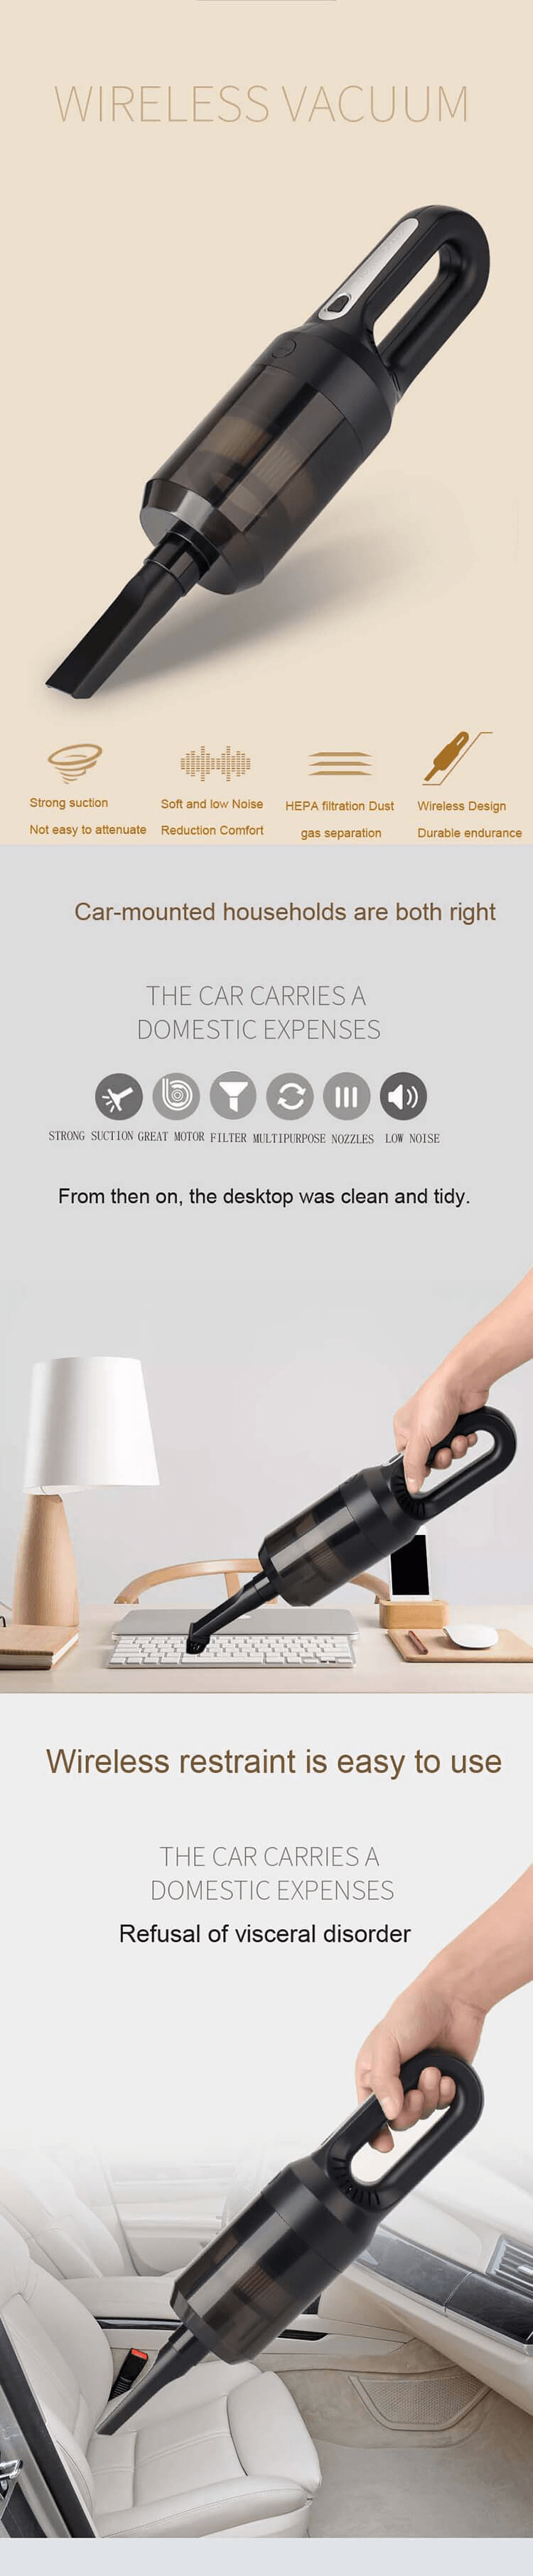 Customized Packaging Cyclone Home House Office Portable Wireless Cordless Handheld Car Mini Vacuum Cleaner